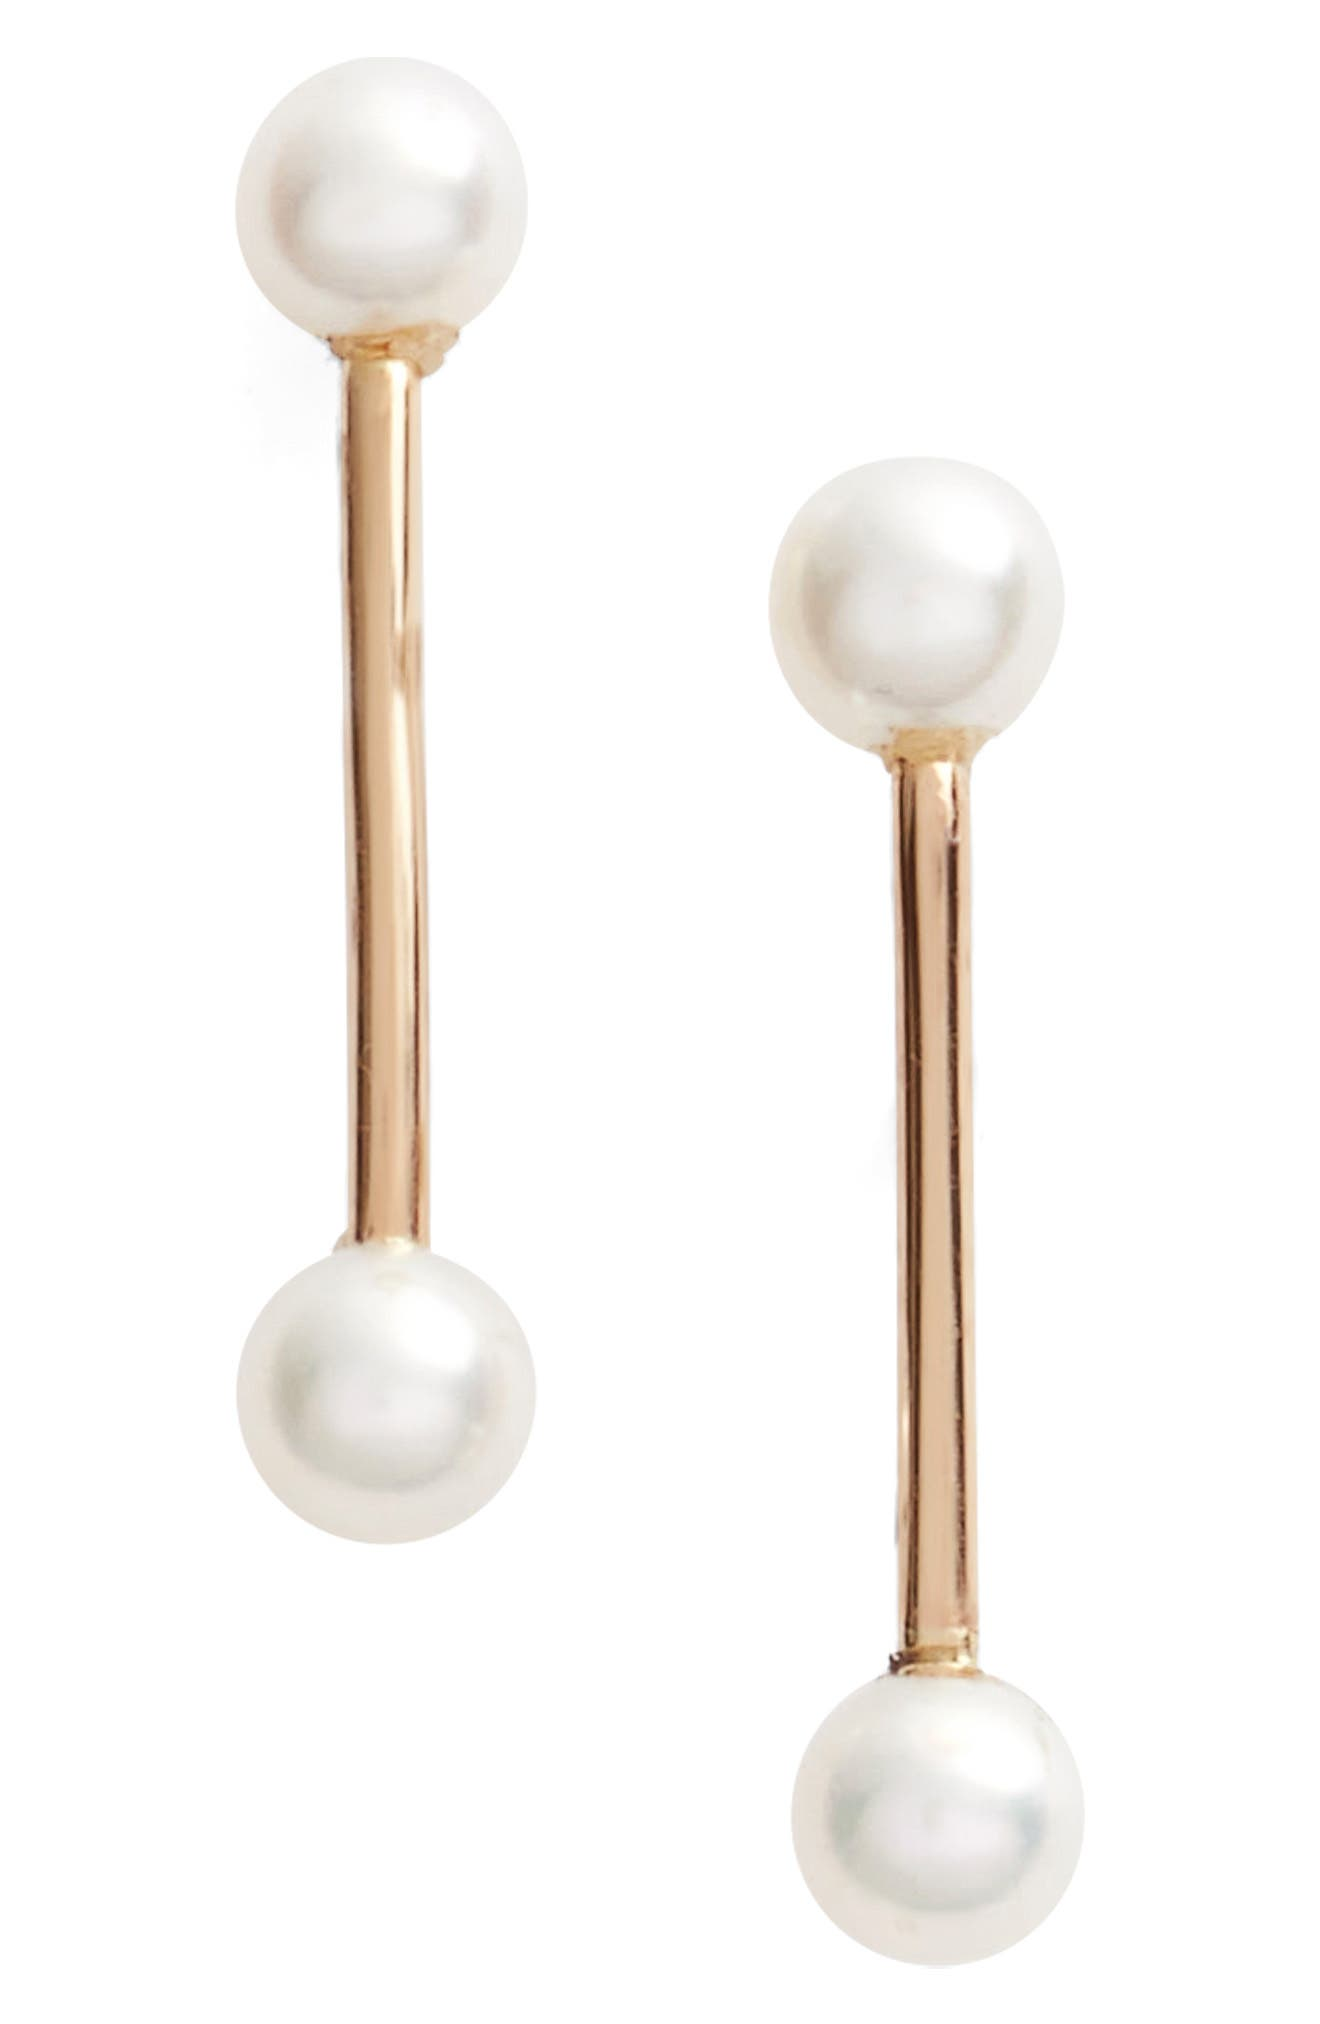 Pearl Bar Stud Earrings,                             Main thumbnail 1, color,                             Yellow Gold/ White Pearl